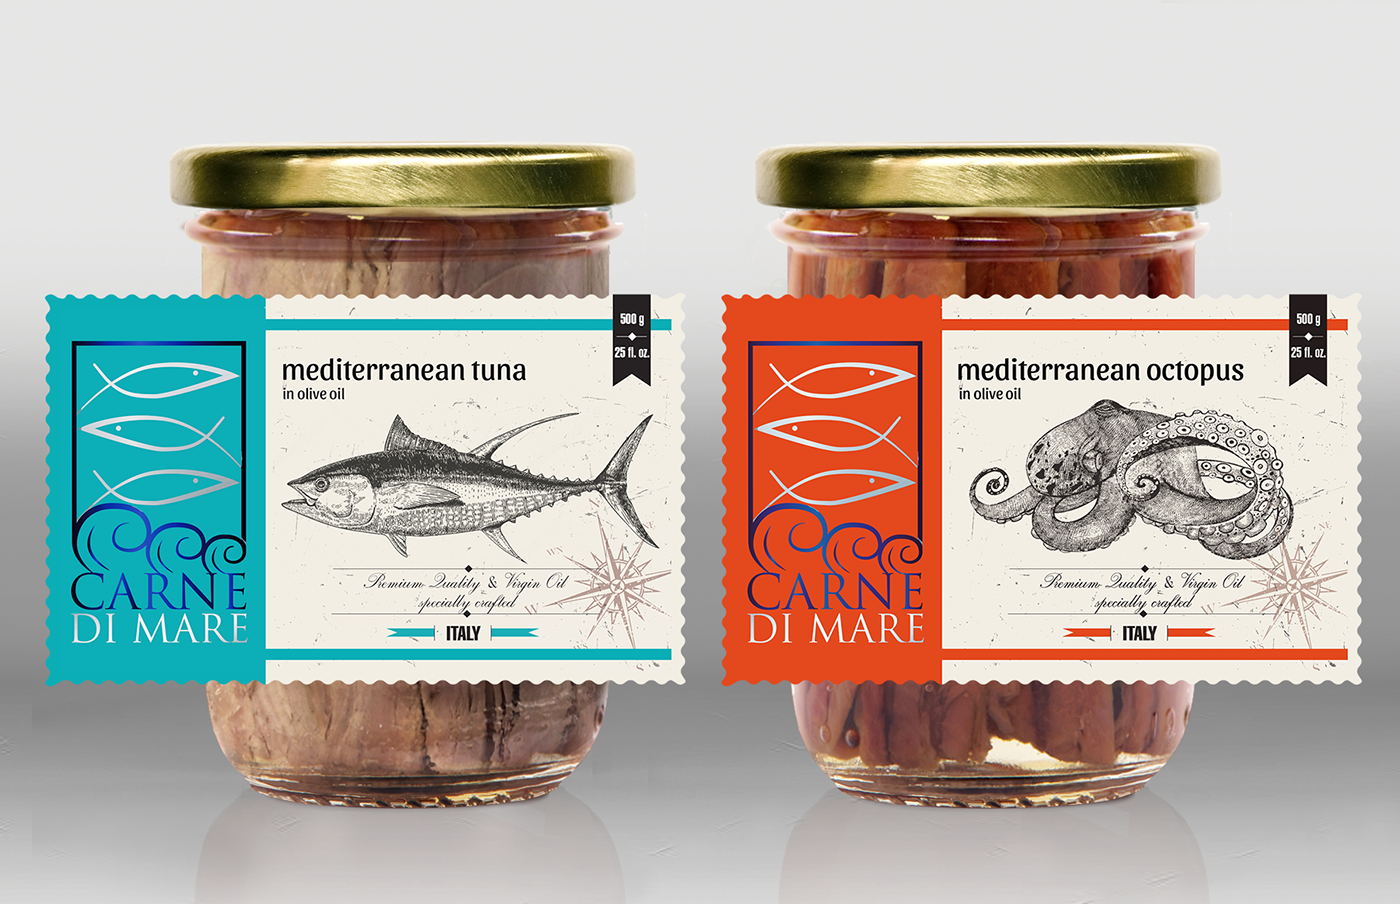 Storage industry canned and preserved fish and seafood